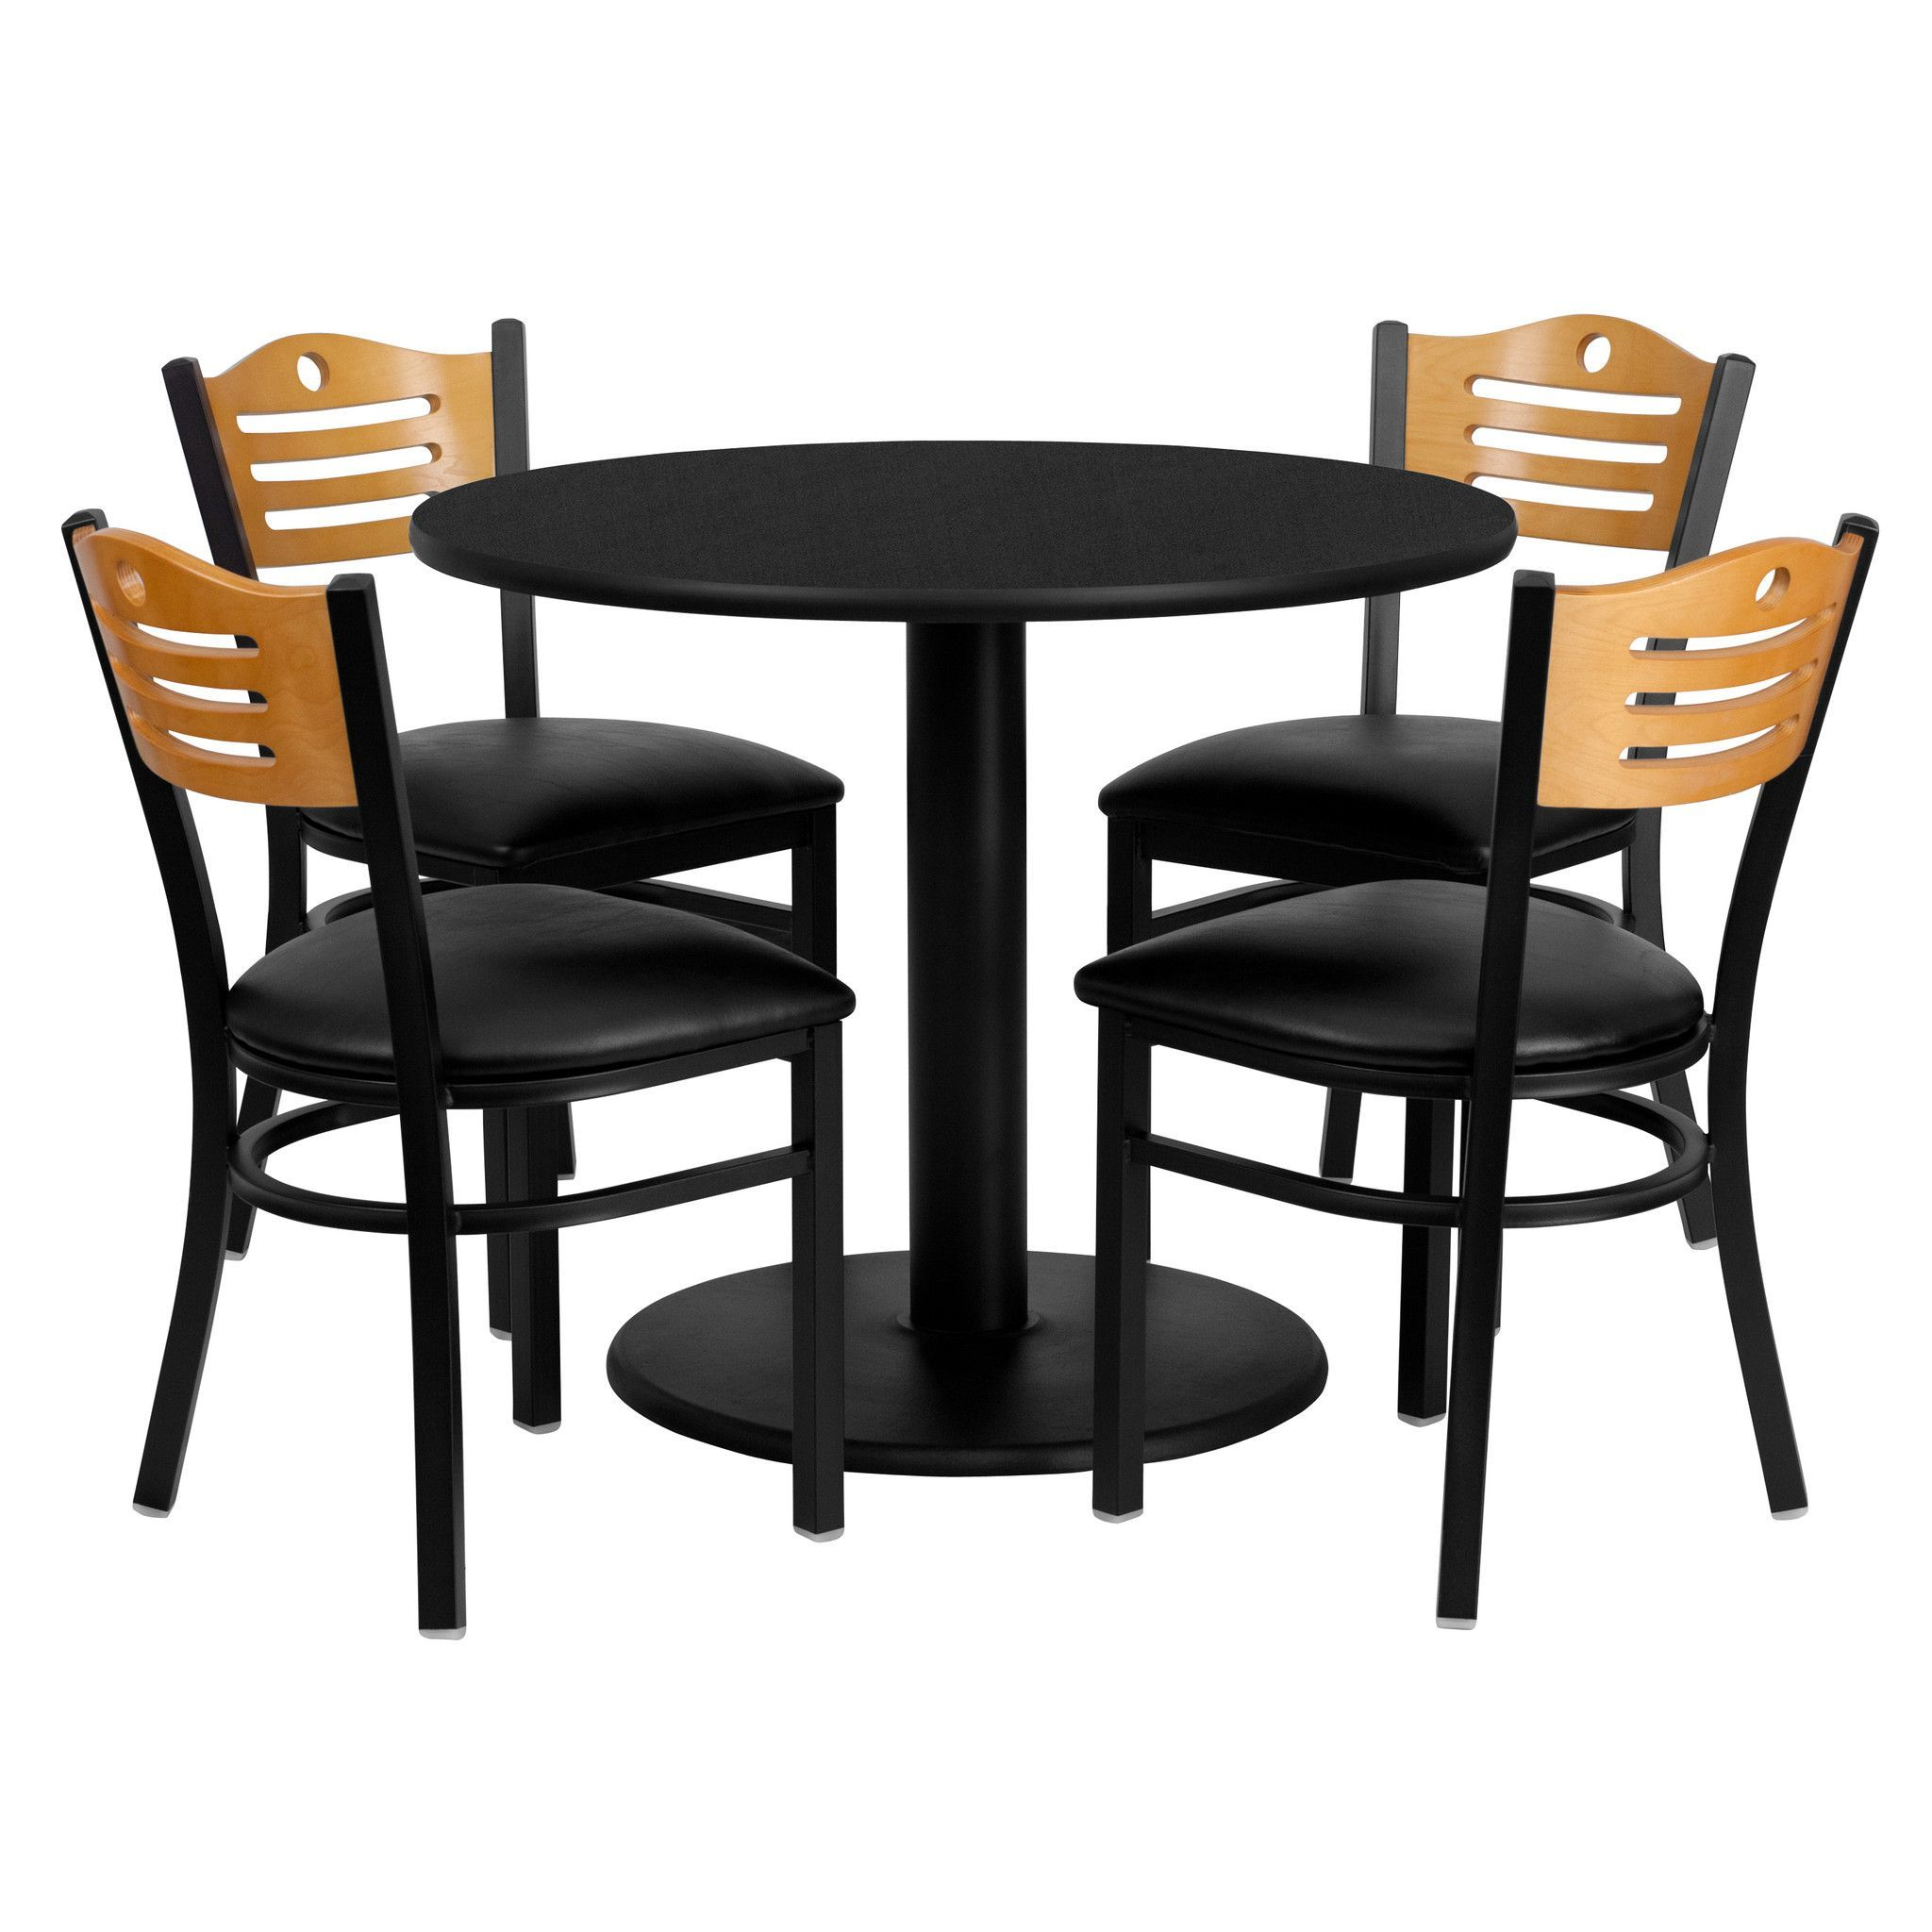 36 round black laminate table set with 4 wood slat back metal chairs